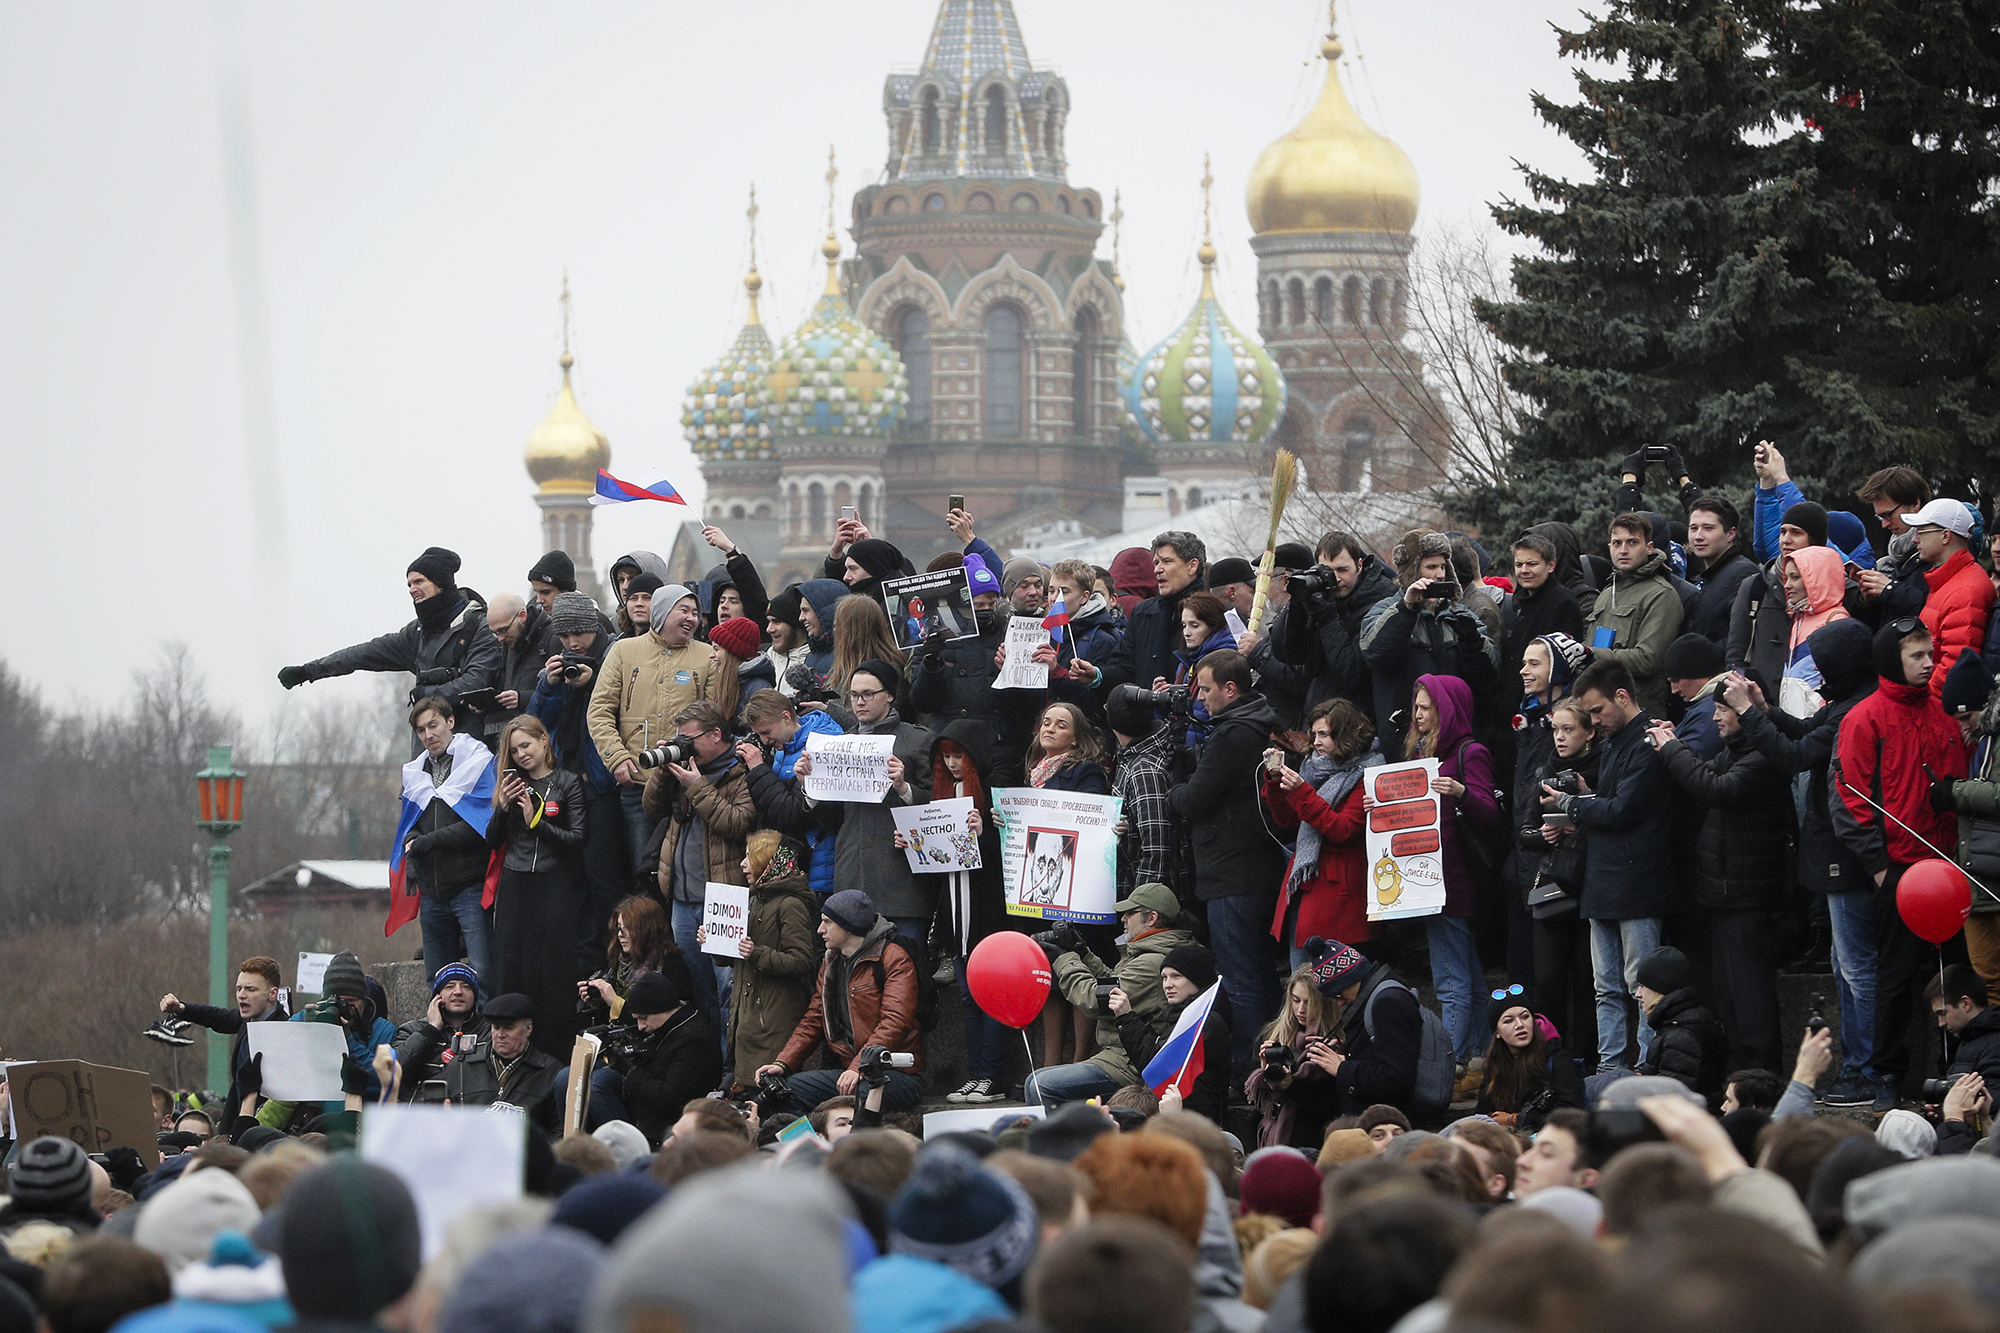 Protesters gather at Marsivo Field in St.Petersburg, Russia, on March 26, 2017.